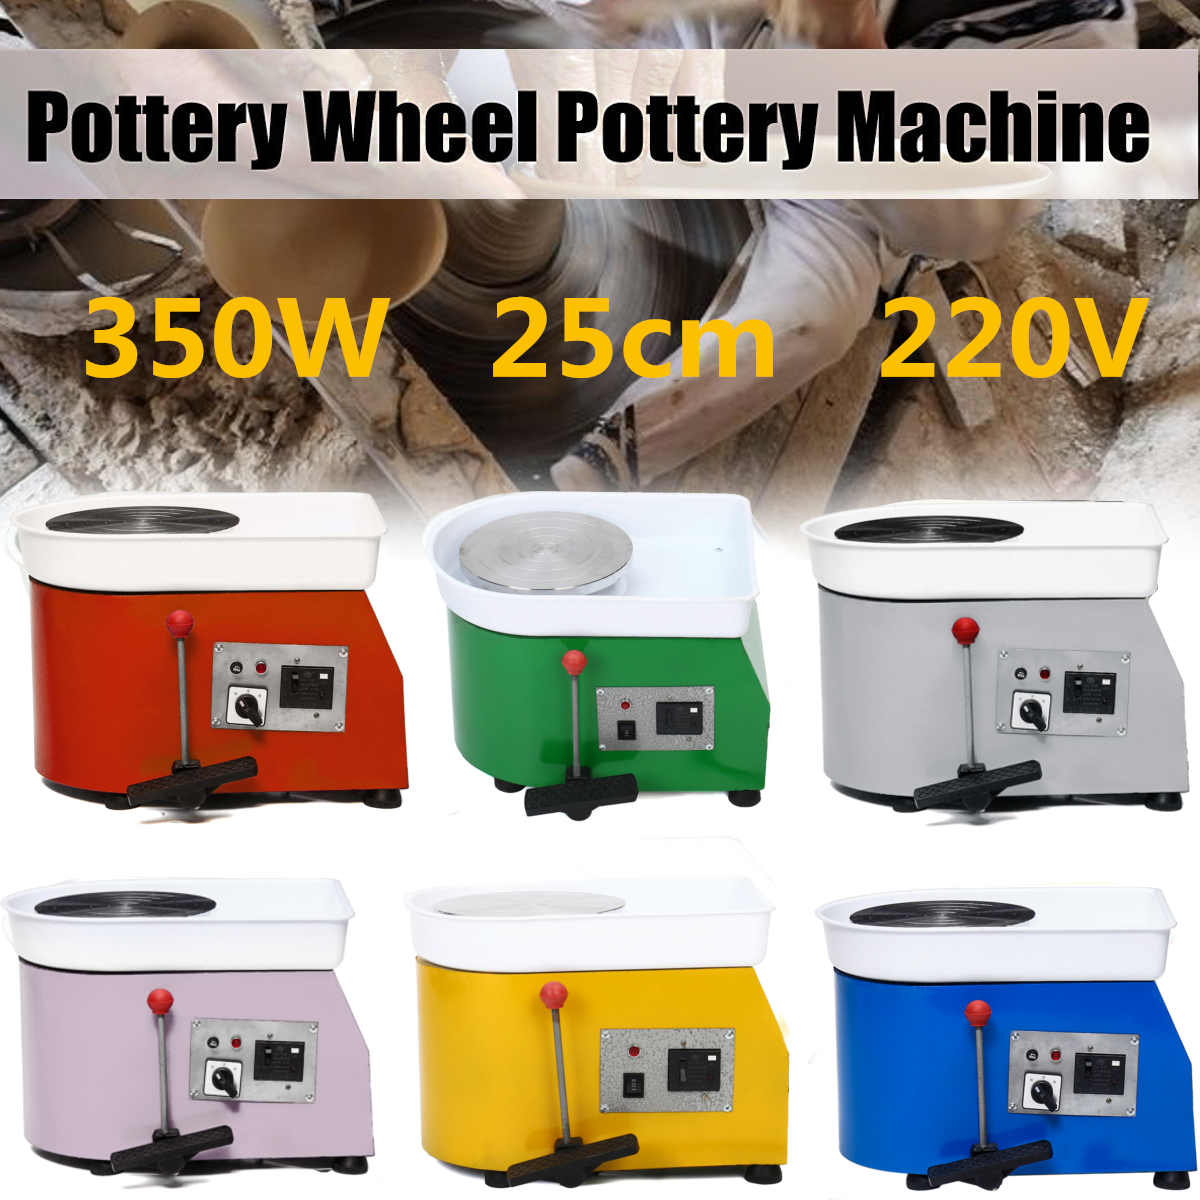 25cm 350W 220V Pottery Wheel Pottery DIY Clay Machine For Ceramic Work Ceramics Clay Children Learning Toy